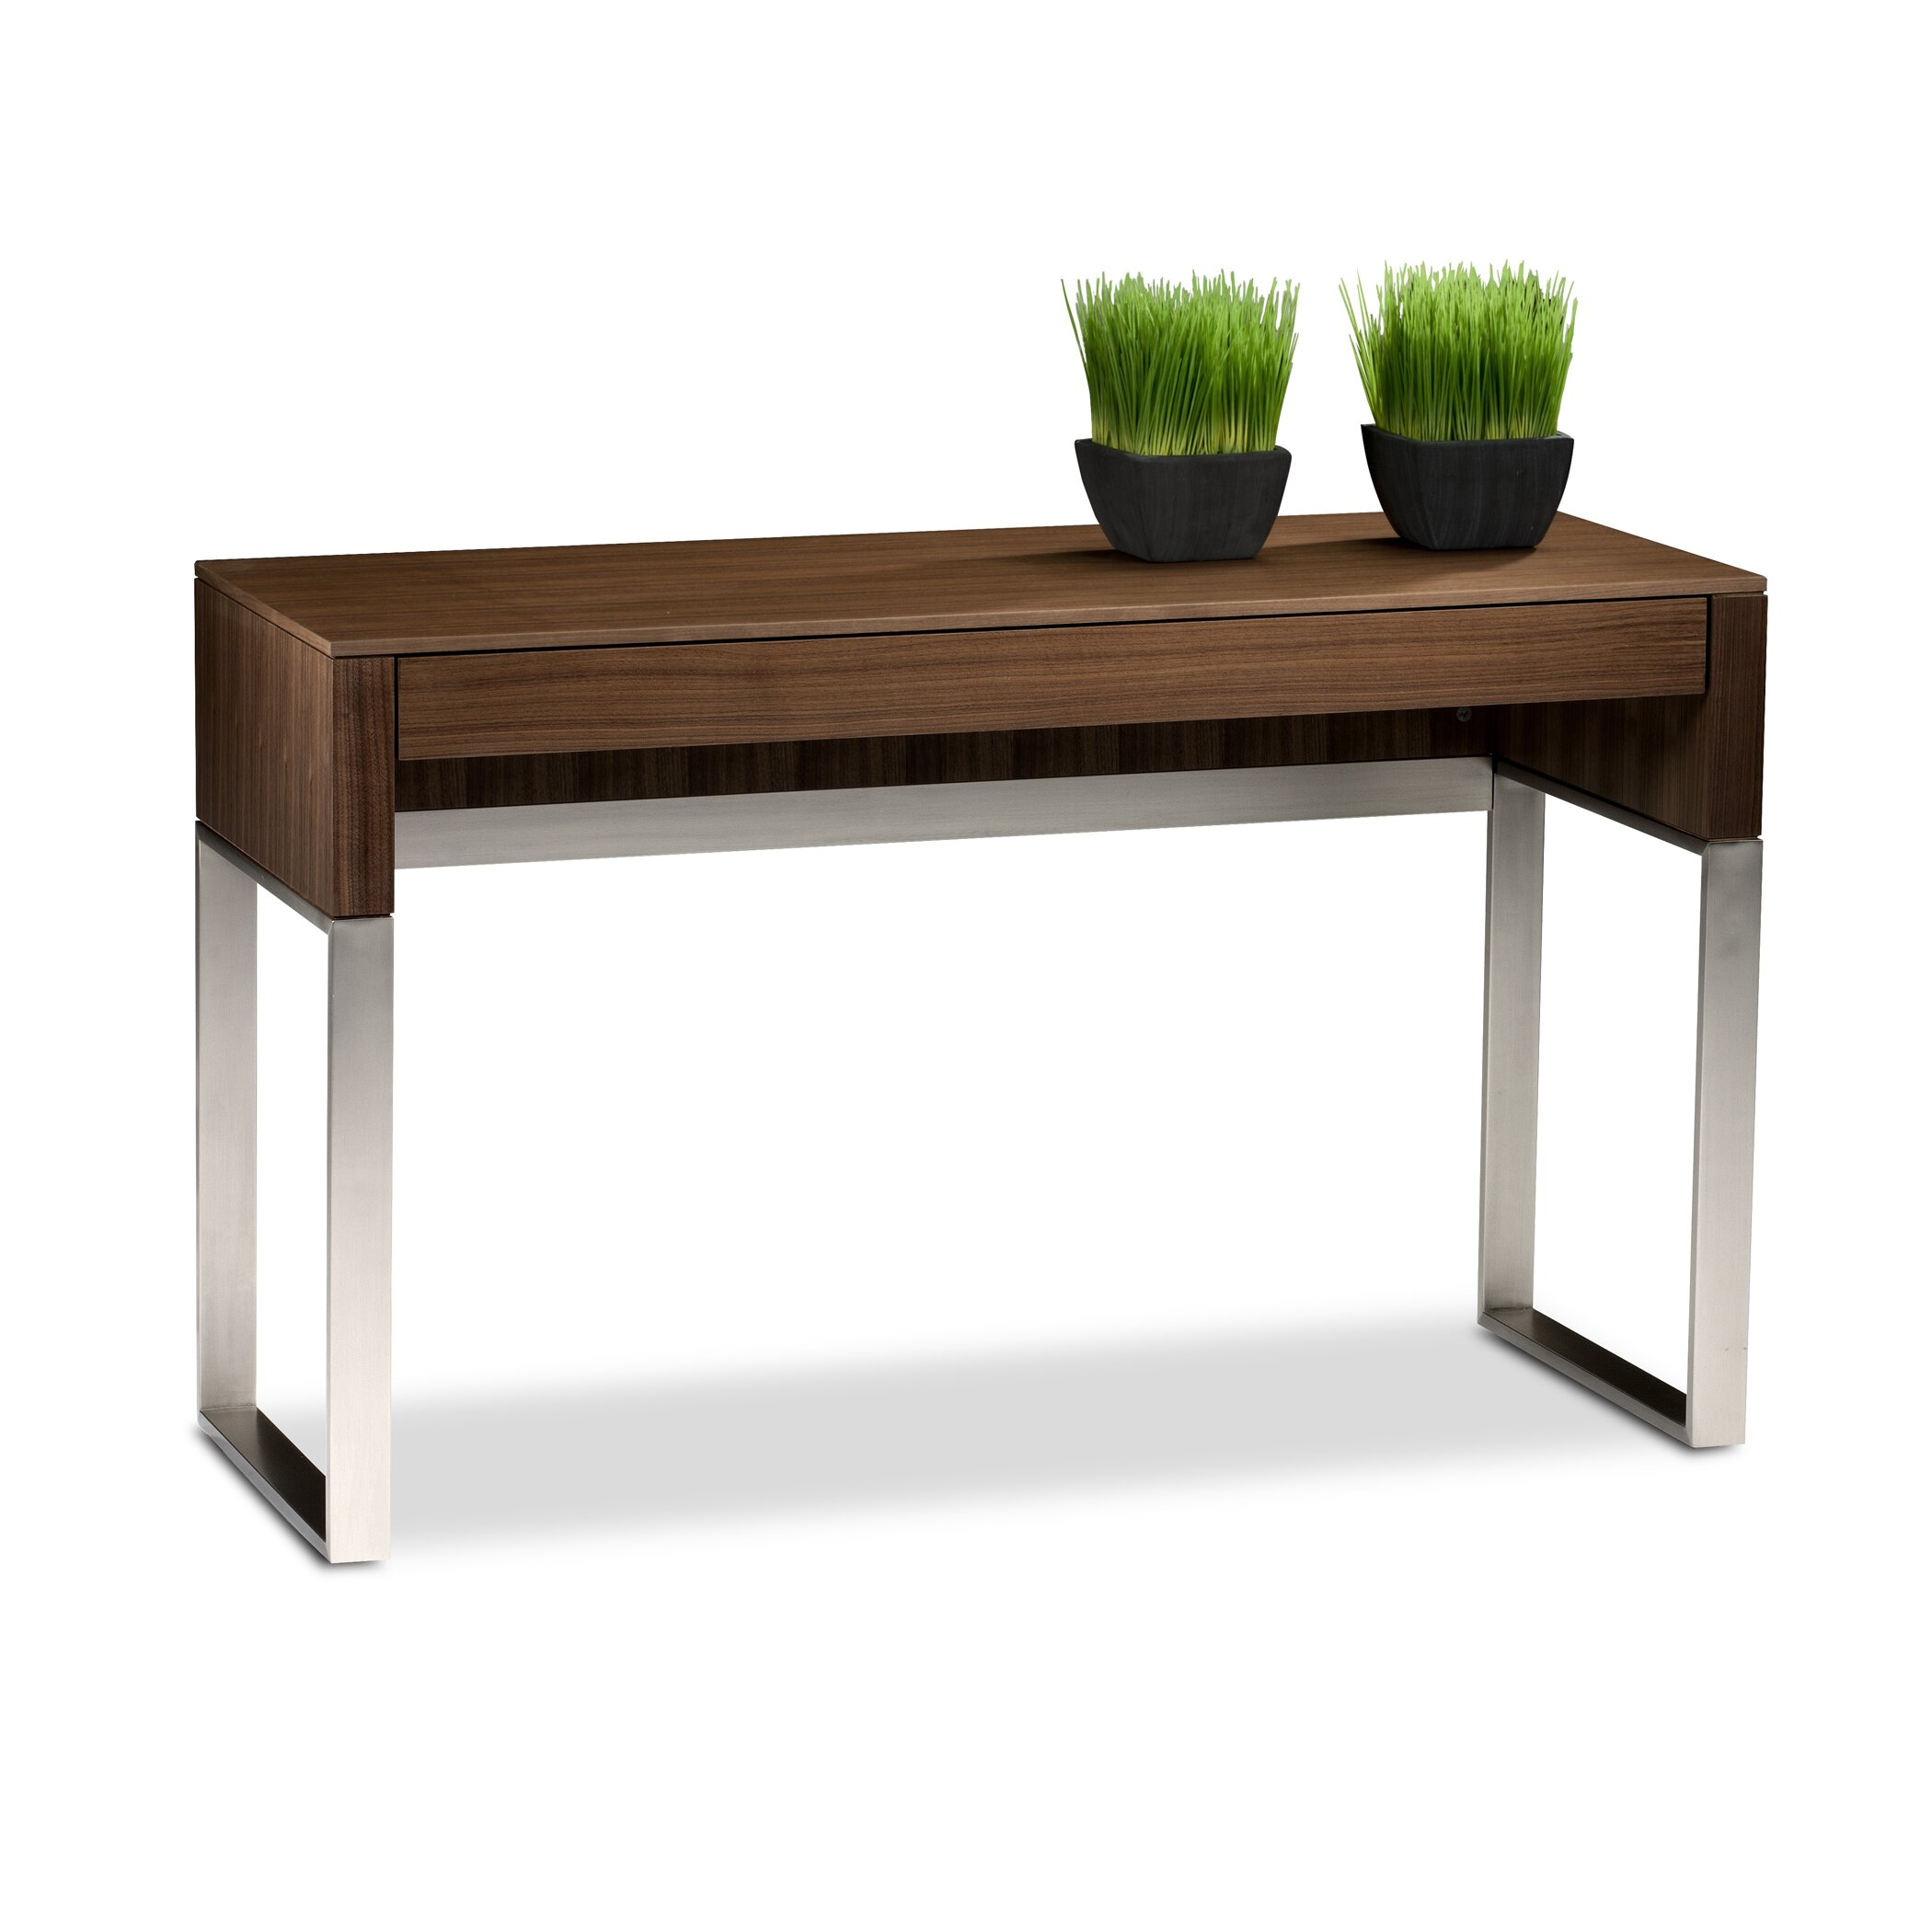 Bdi usa cascadia console table with drawer reviews wayfair